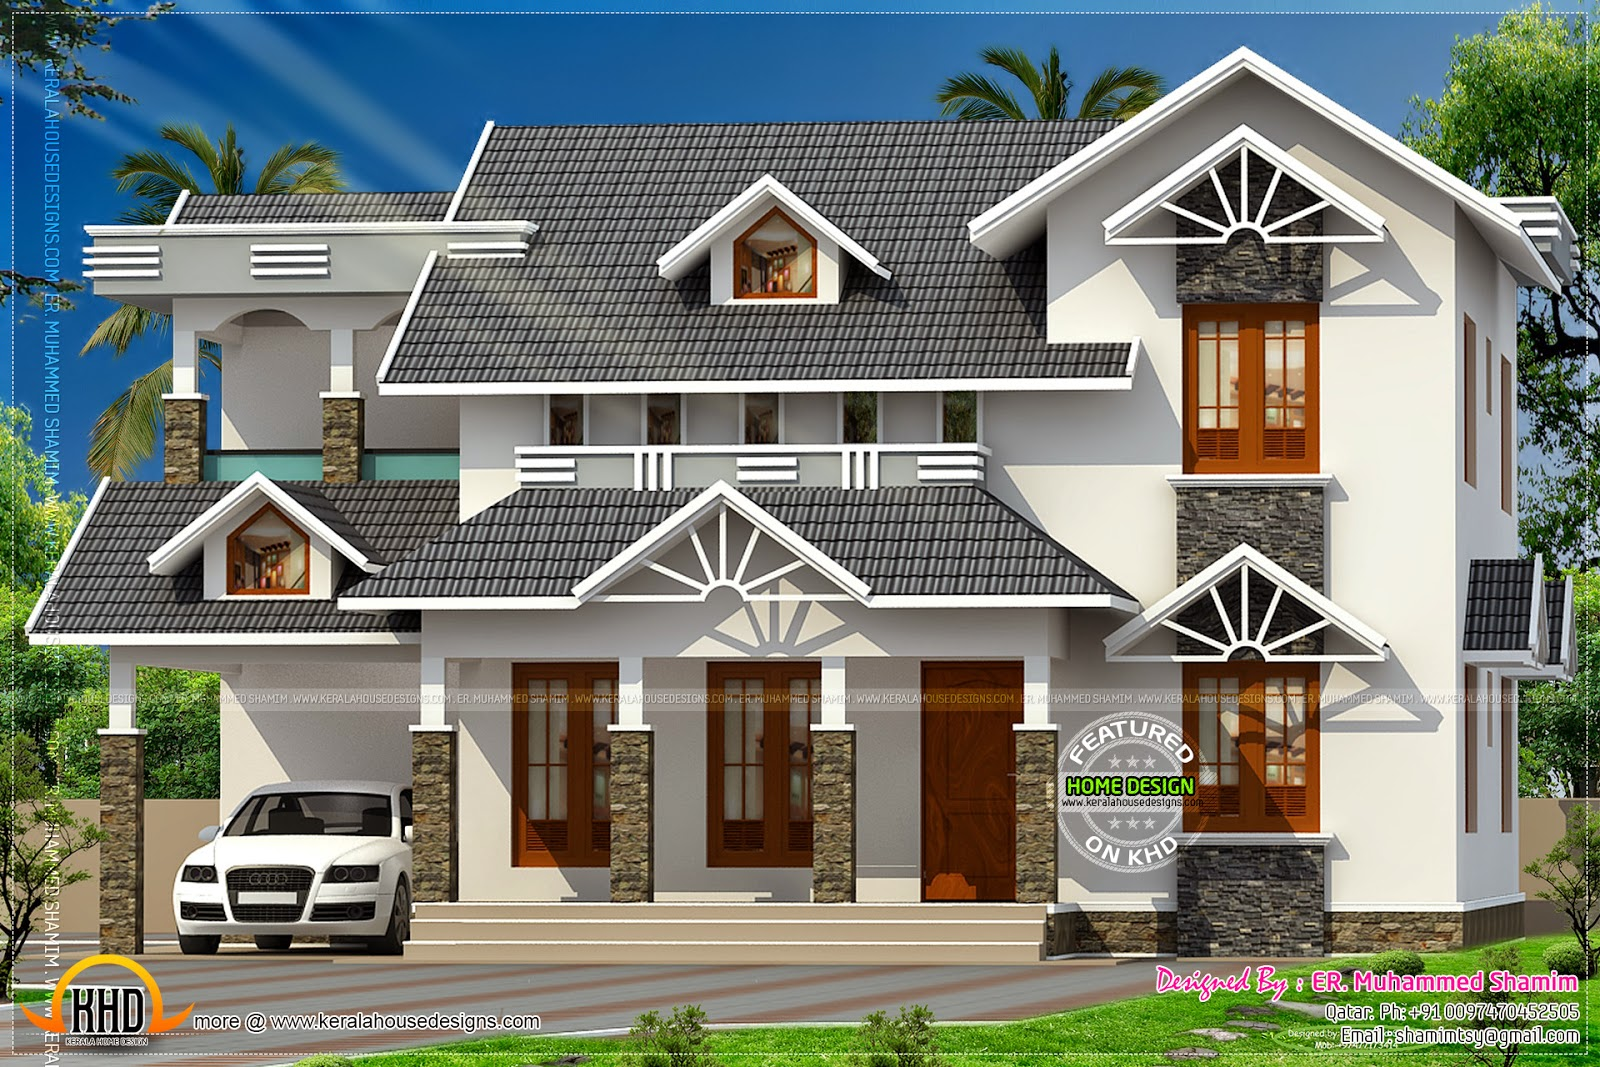 Nice sloped roof kerala home design kerala home design for Www kerala house designs com